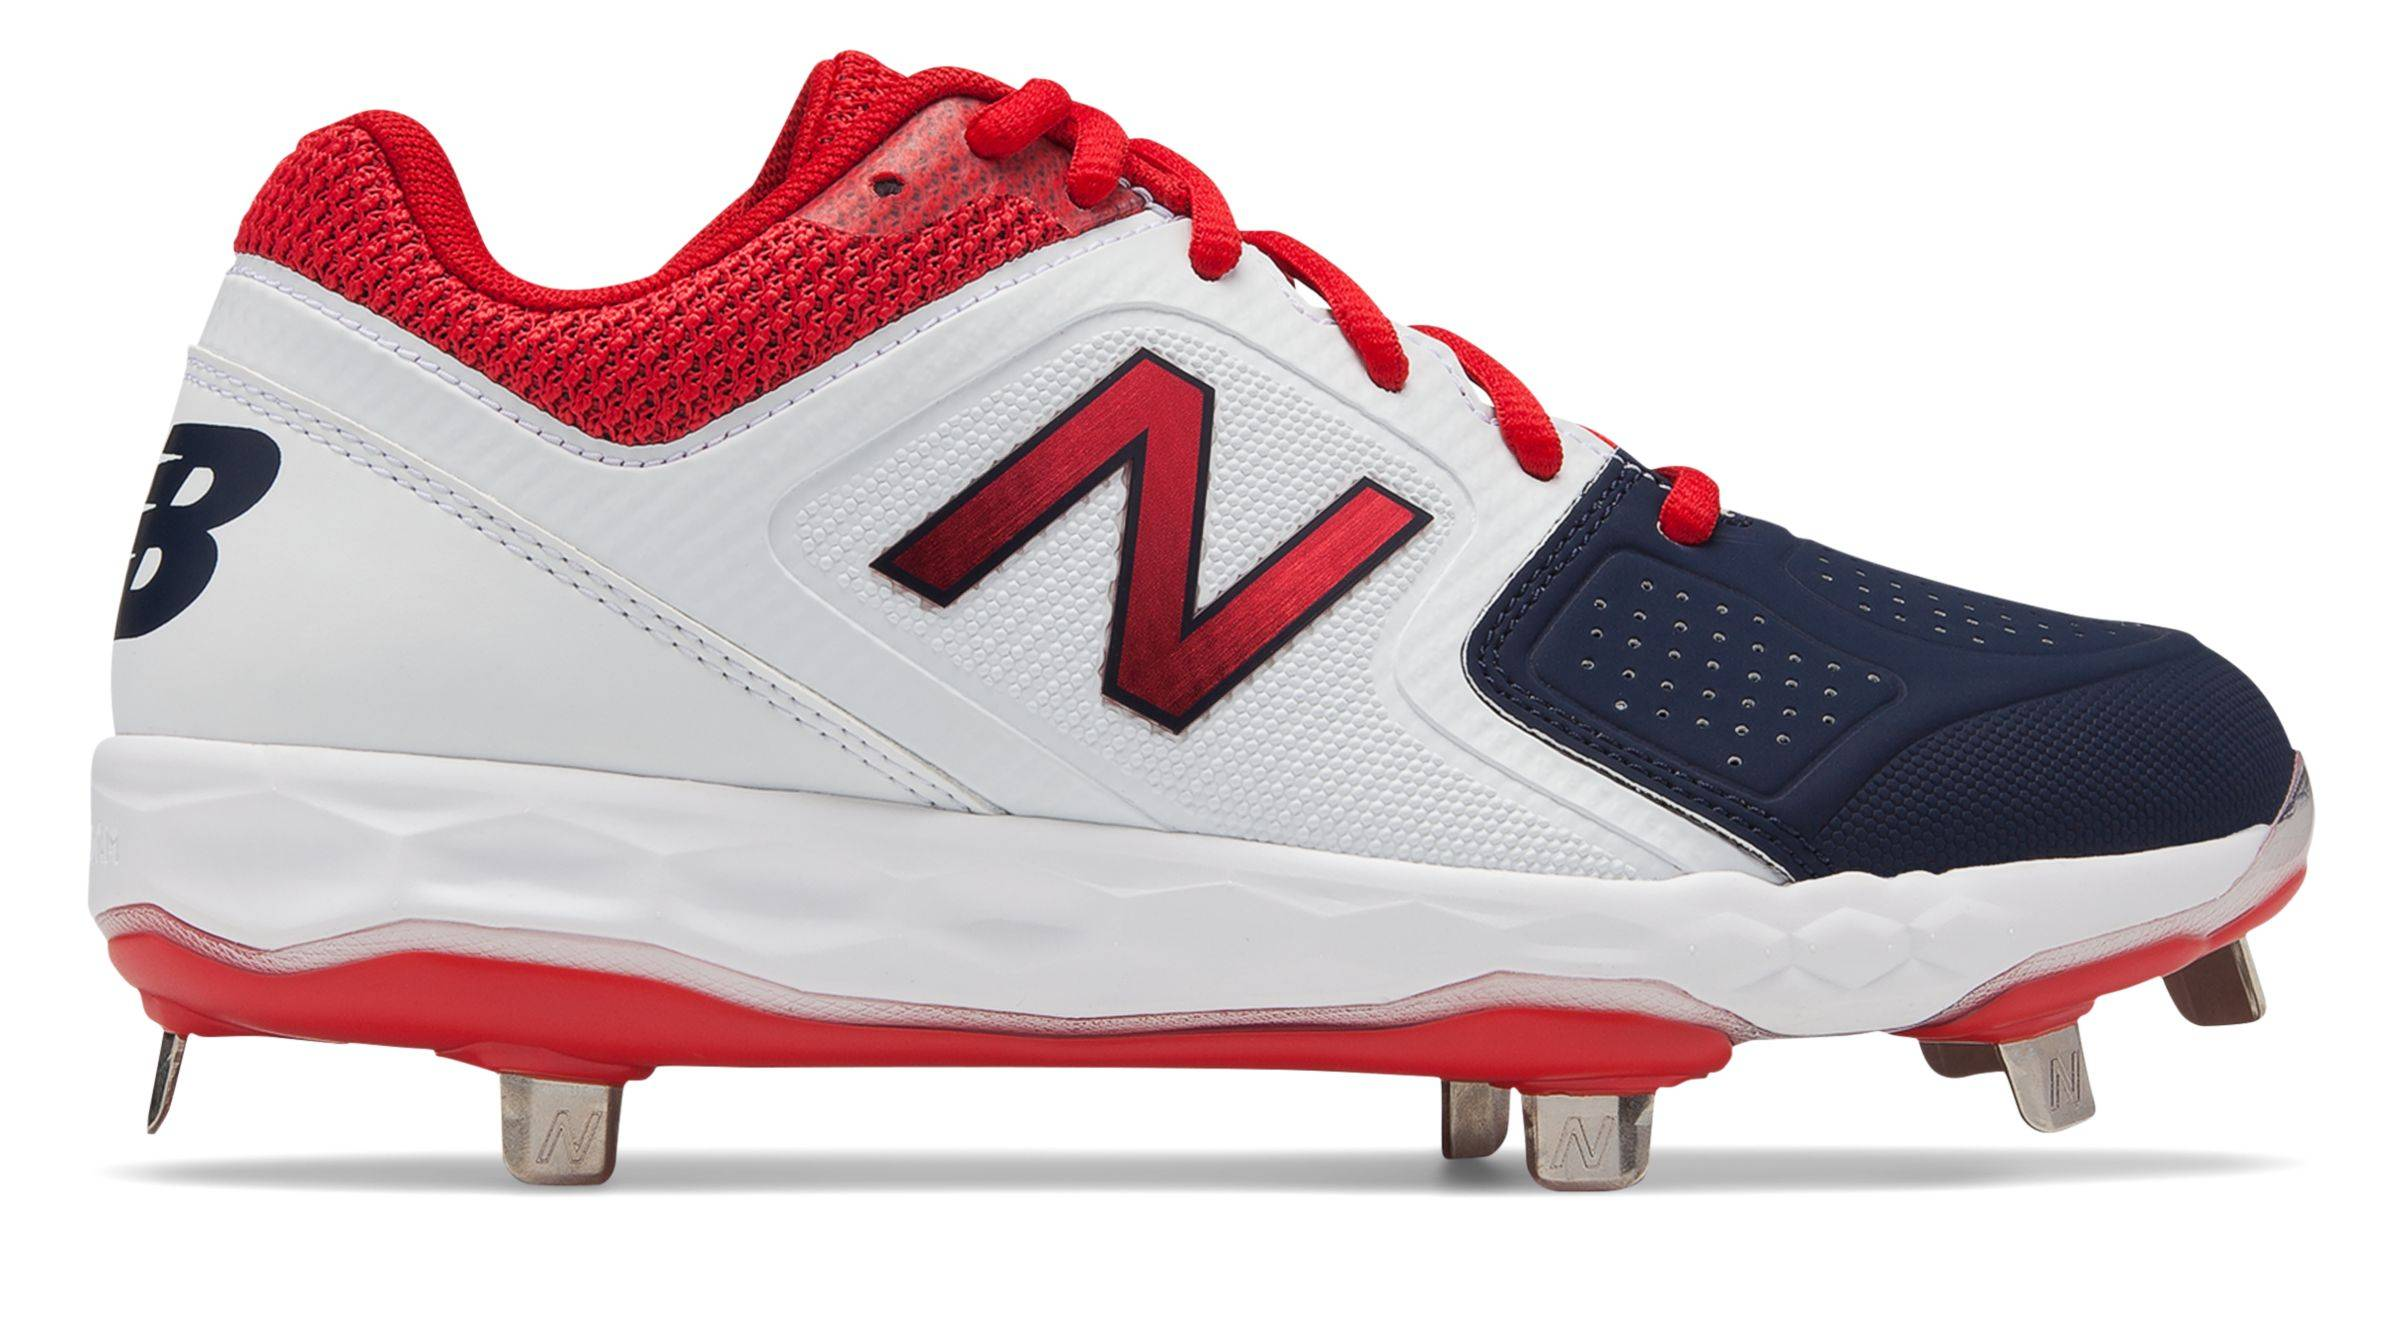 New Balance Low-Cut Fresh Foam Velo1 Metal Softball Cleat Womens Shoes Blue with Red  - Blue with Red - Size: 7